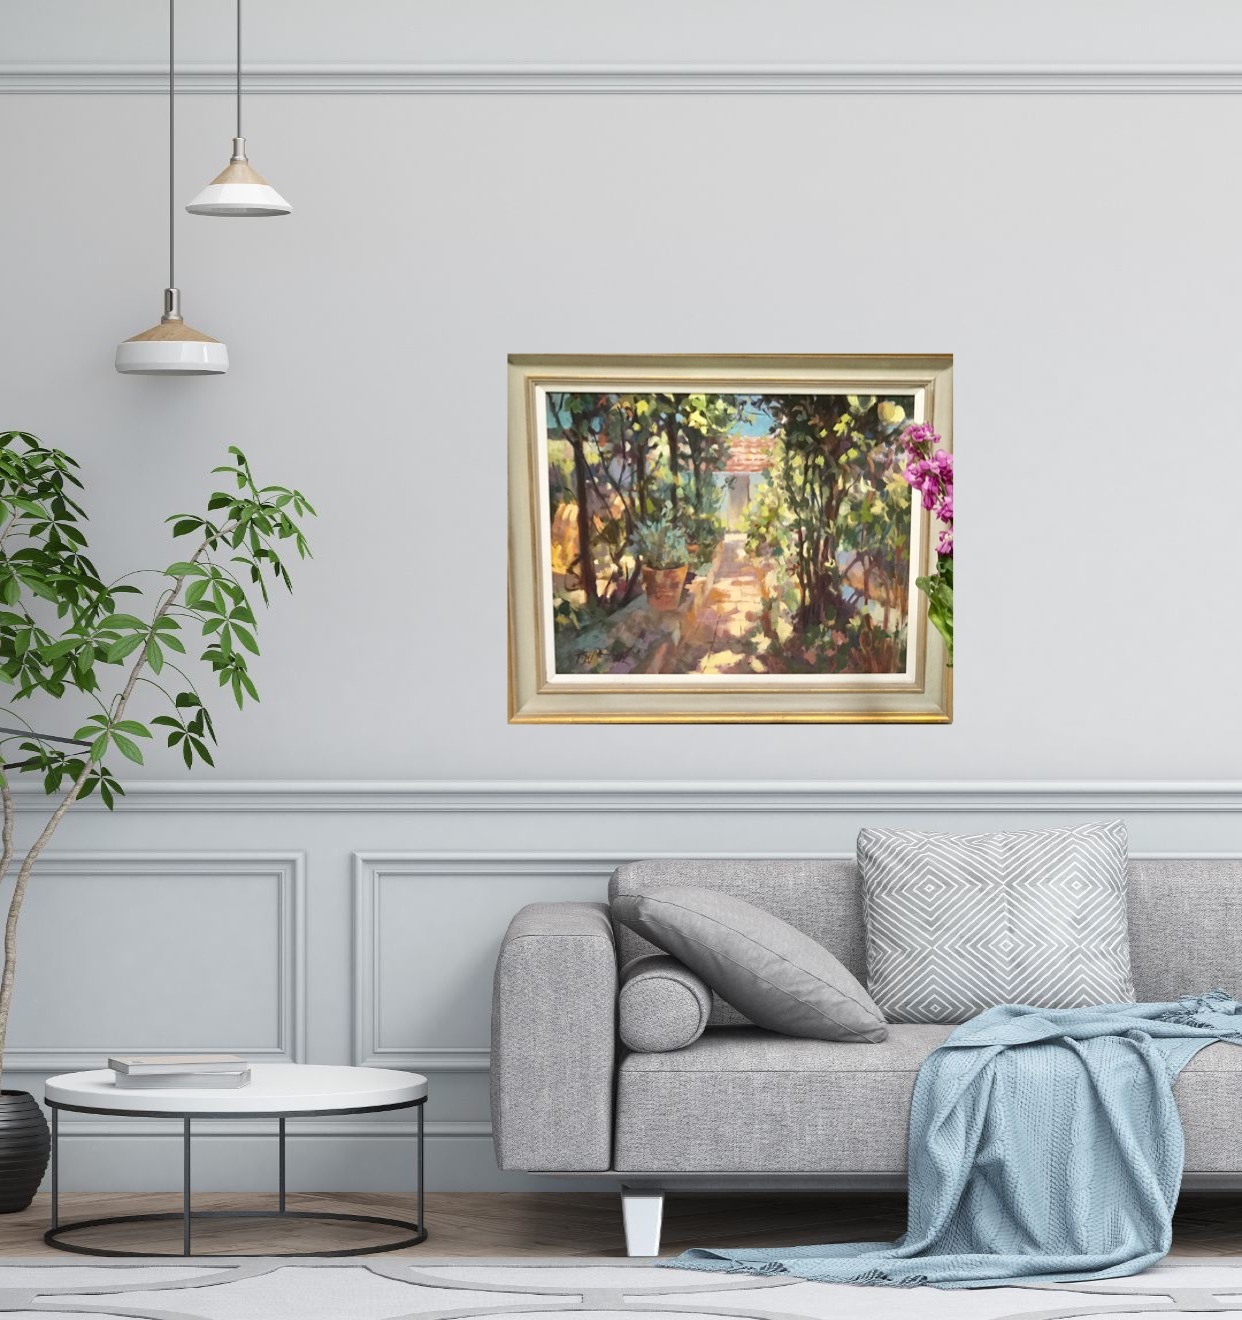 Spanish Light is and original impressionistic painting. The green and terracotta tones contrast each other, giving the piece a vibrancy that attracts the eye to the path which leads you into the painting.